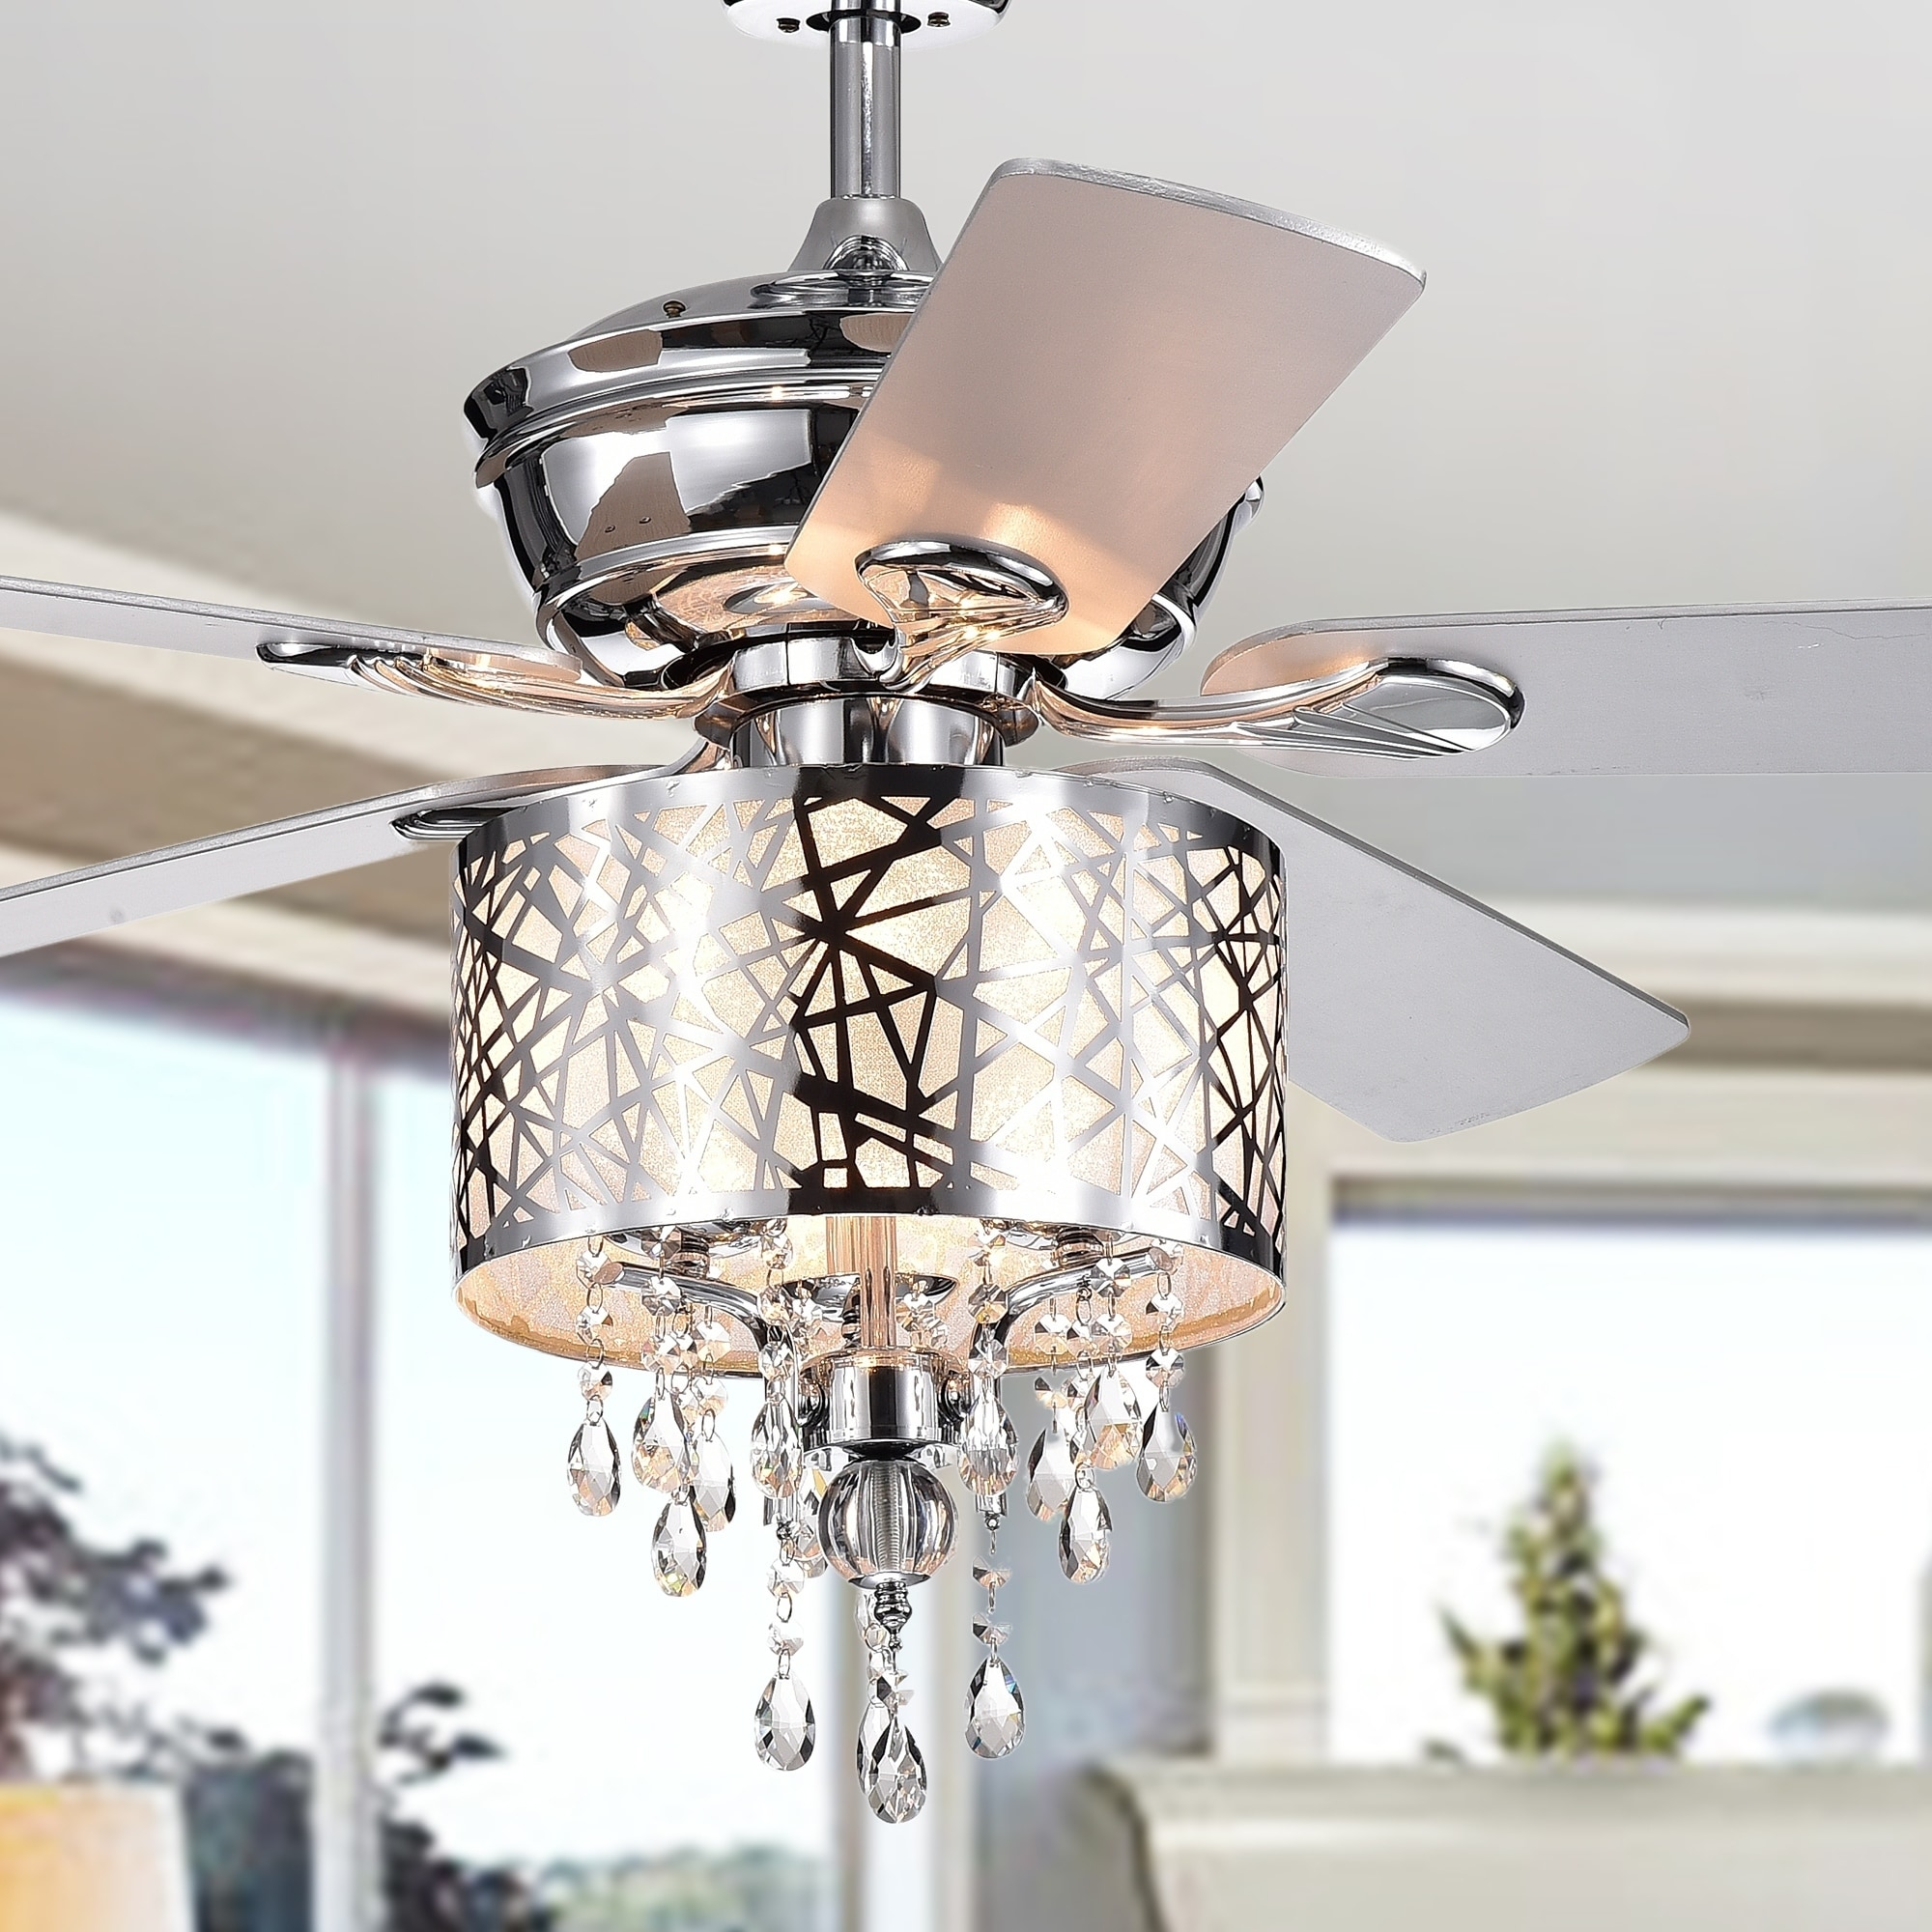 Garvey 5 blade 52 inch chrome ceiling fan with 3 light crystal chandelier remote controlled